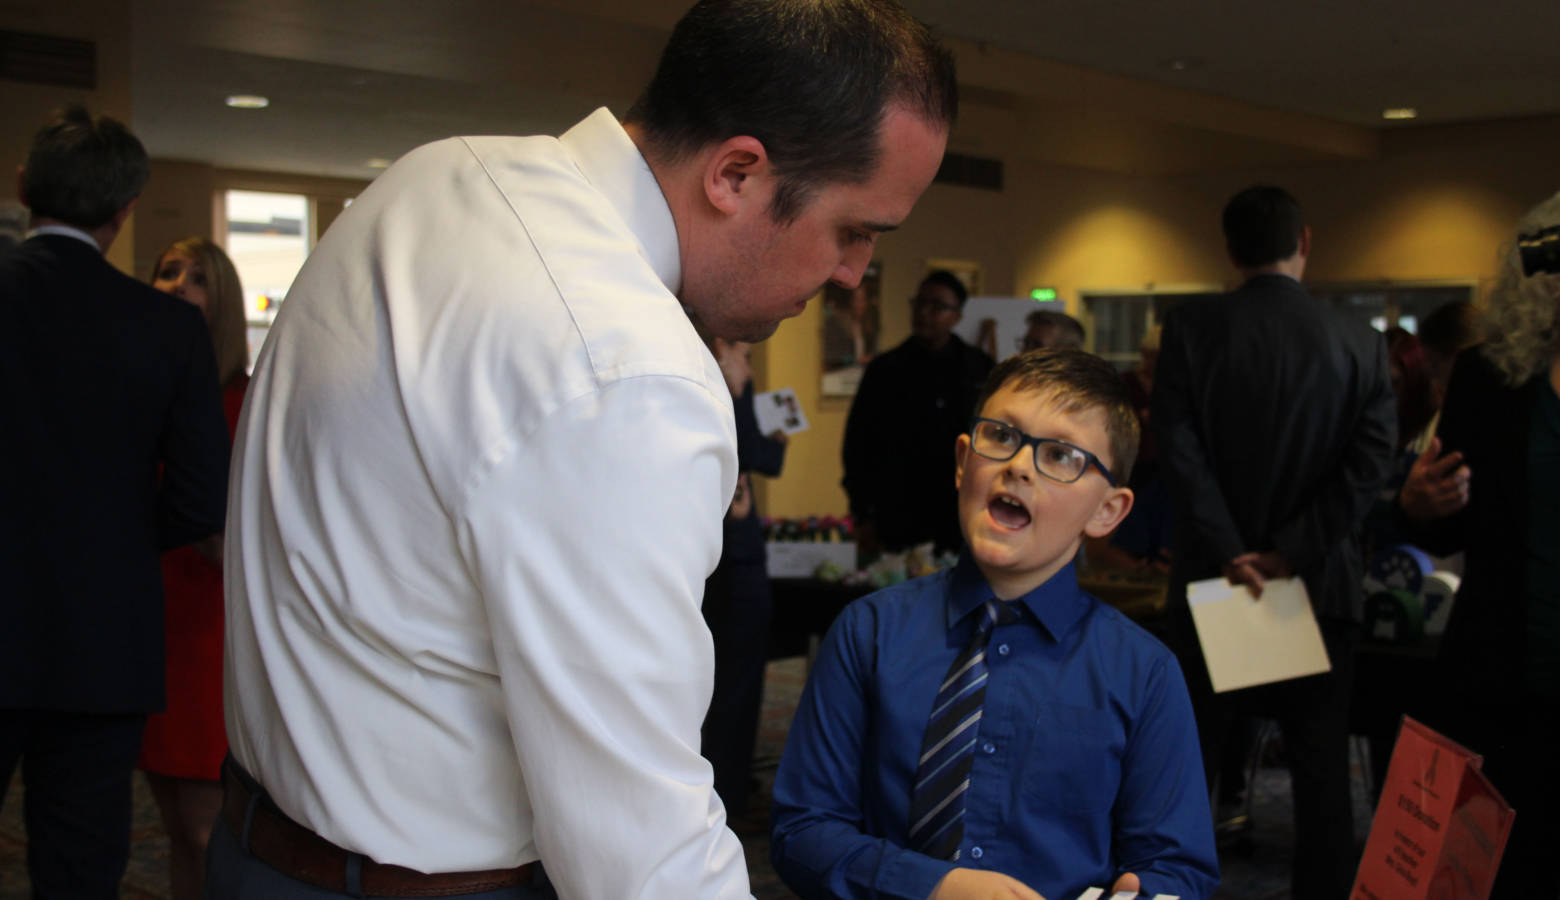 Mayflower Mill Elementary School third grader David Rowe explains his classroom's business to volunteer business judge First Merchants Bank Commercial Relationship Manager Vice President Greg Whited. (Samantha Horton/IPB News)